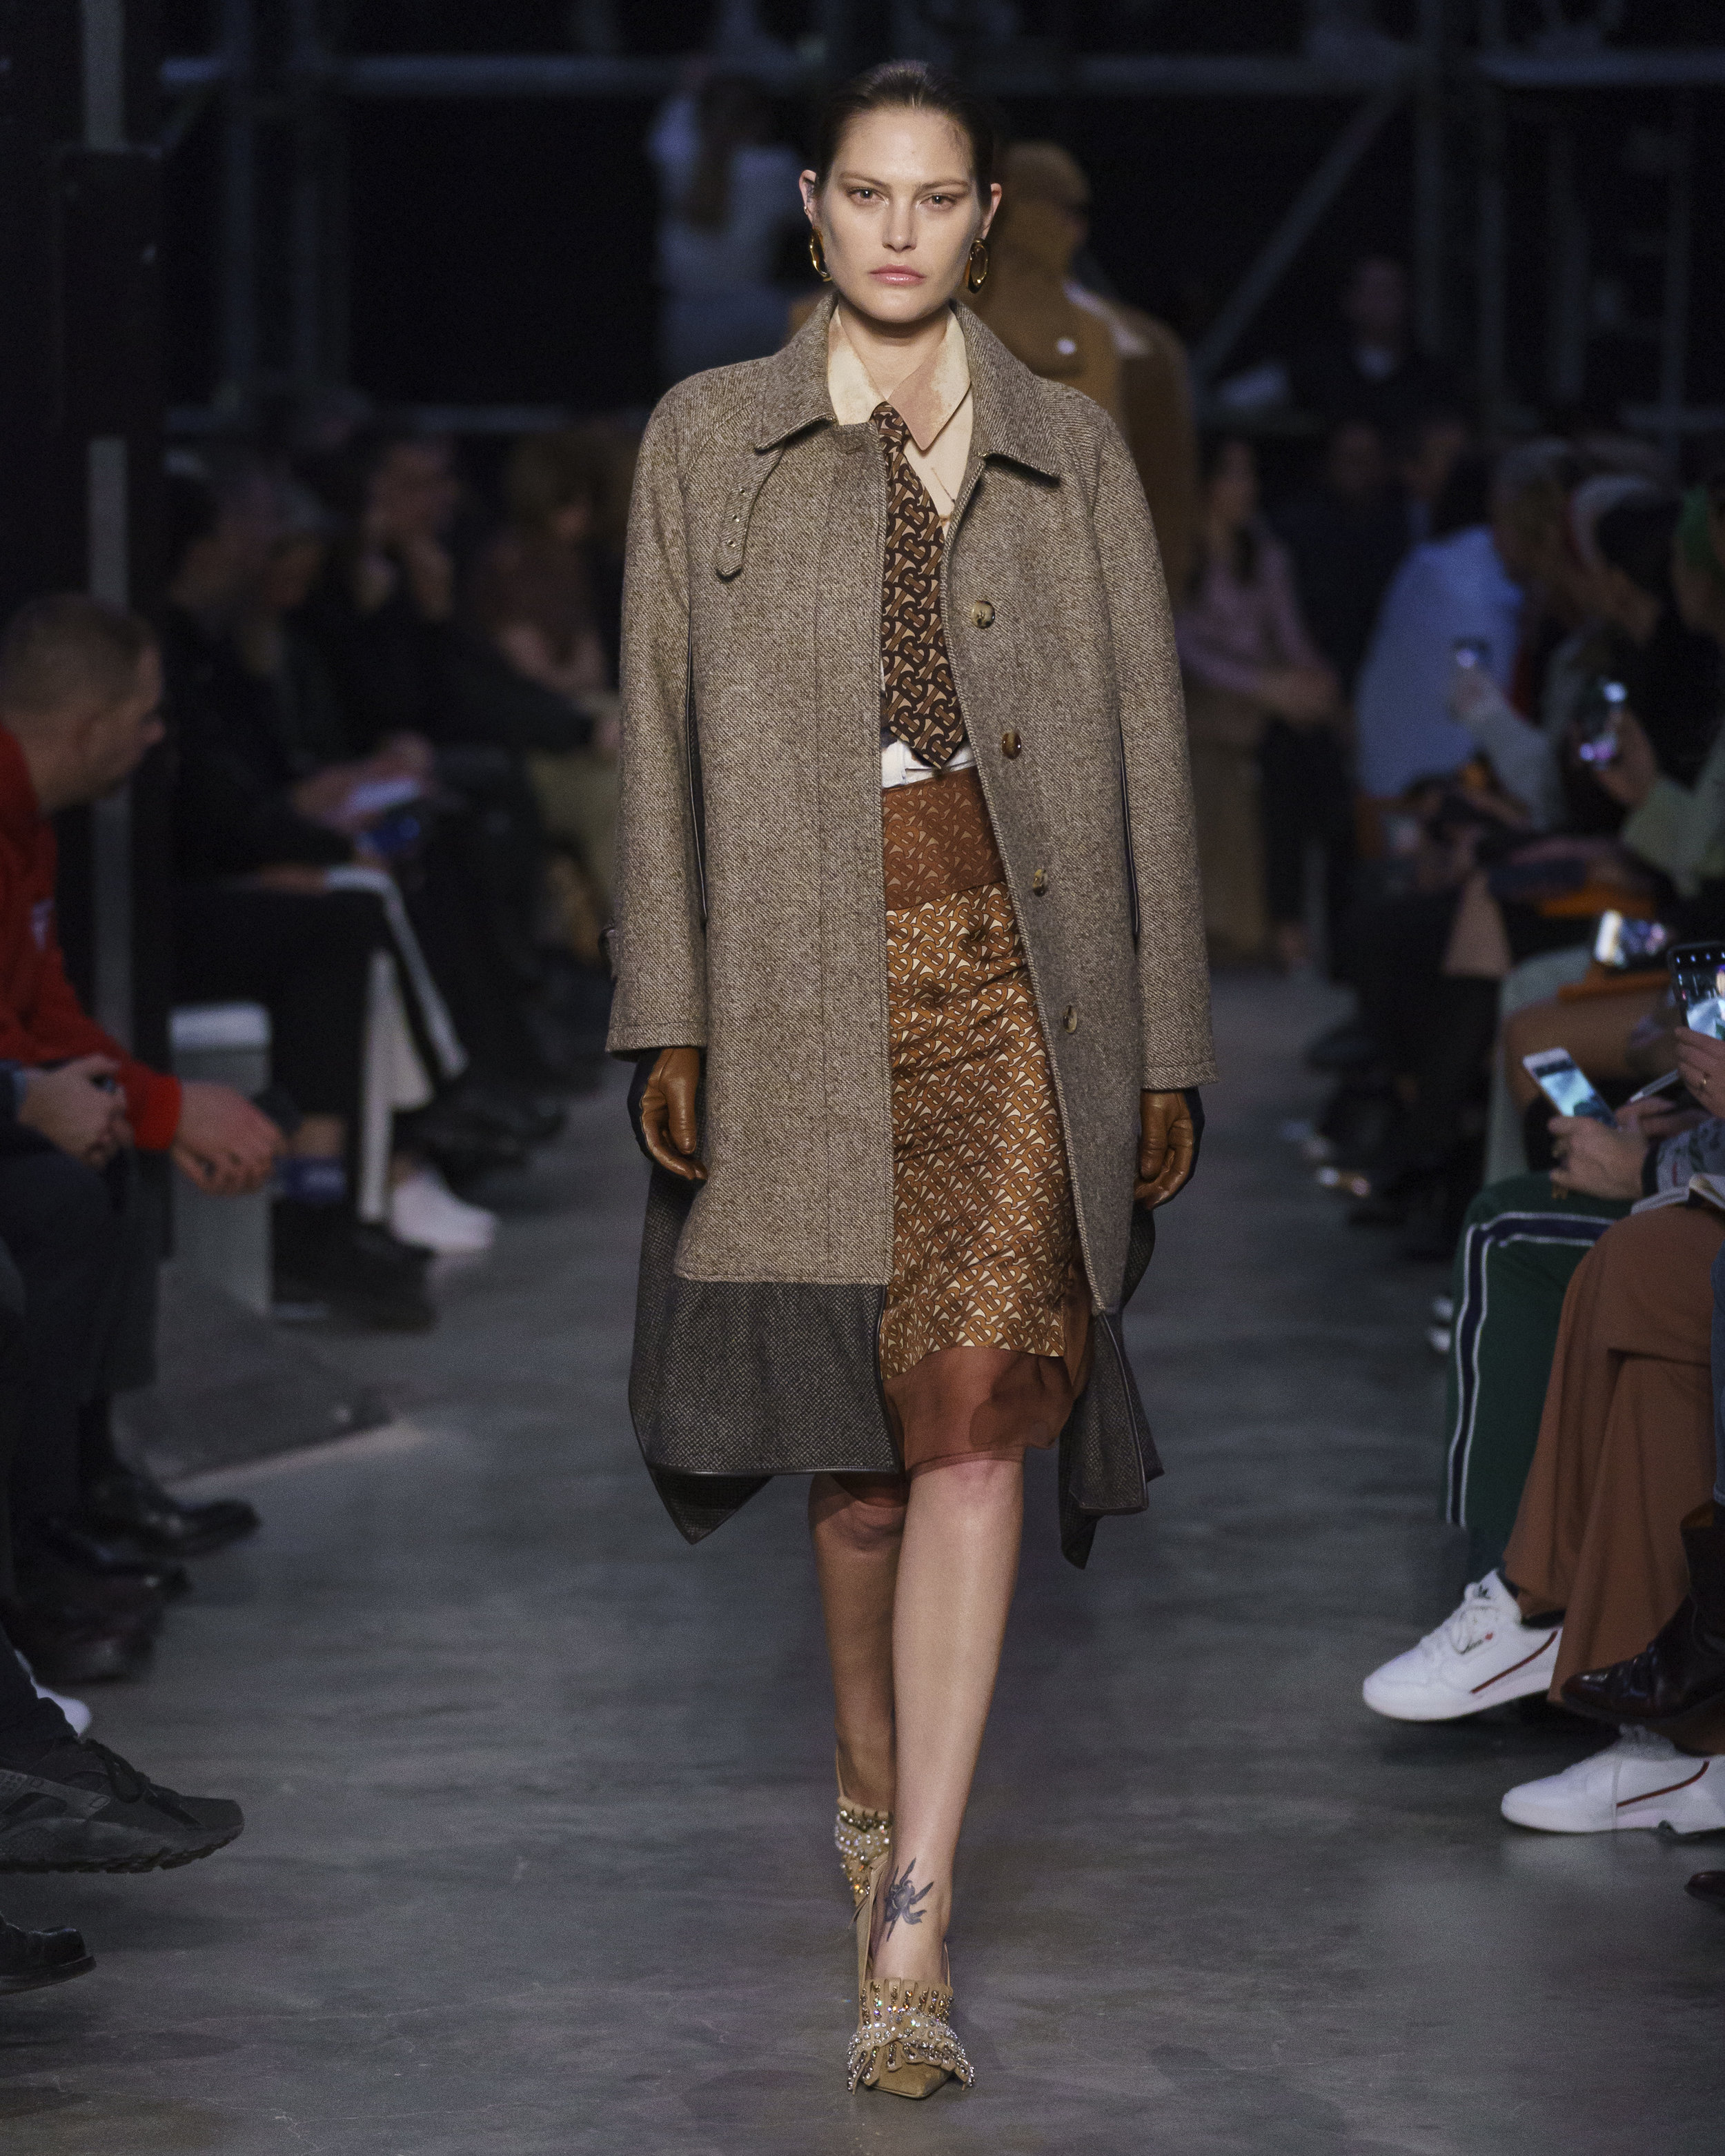 Burberry Autumn_Winter 2019 Collection - Look 69.jpg